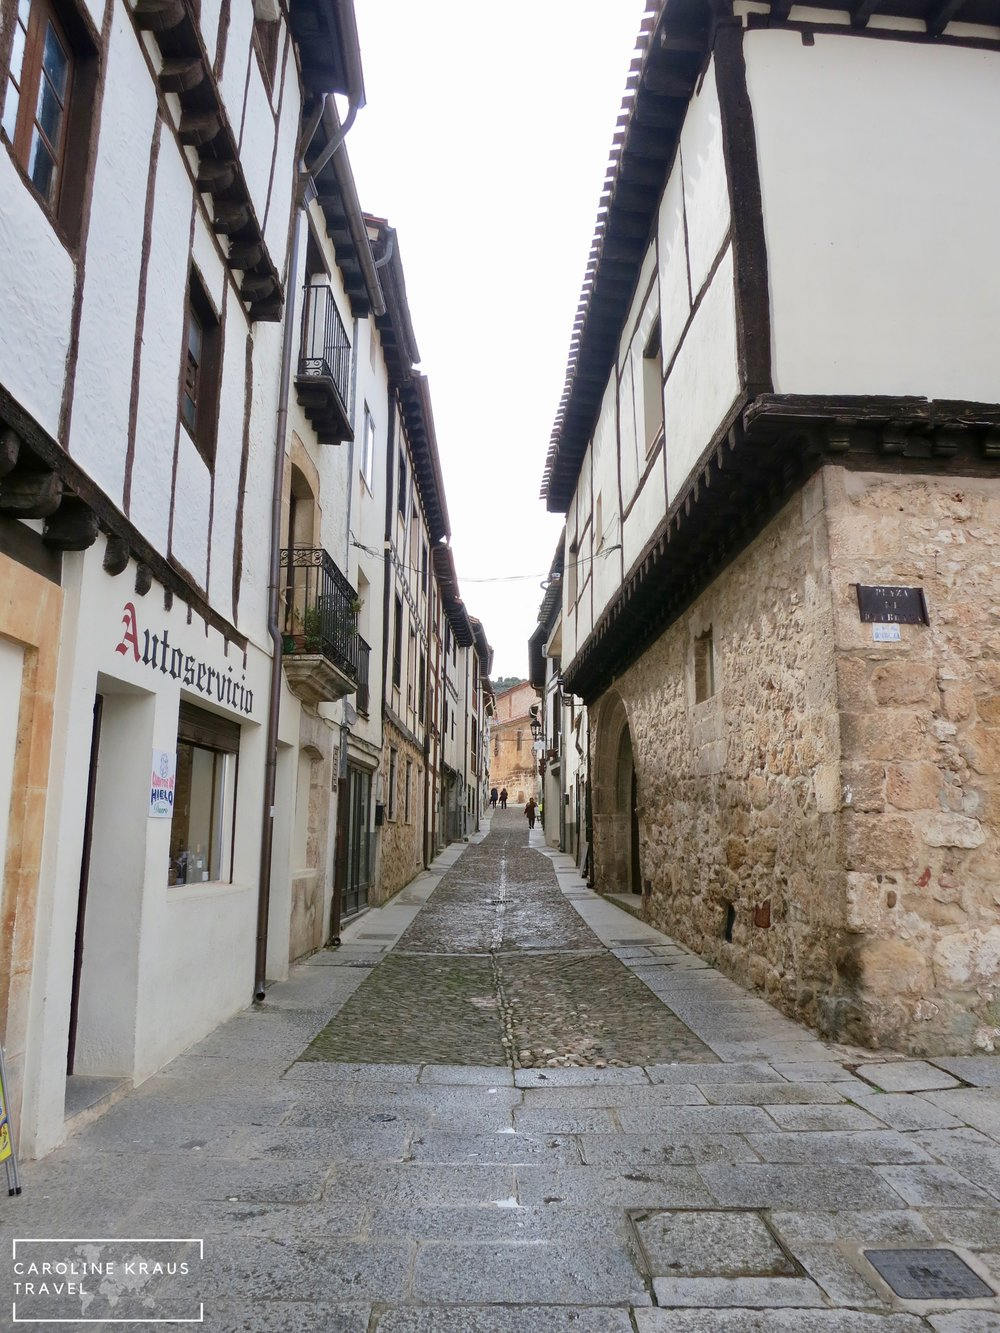 The streets of Covarrubias, Spain